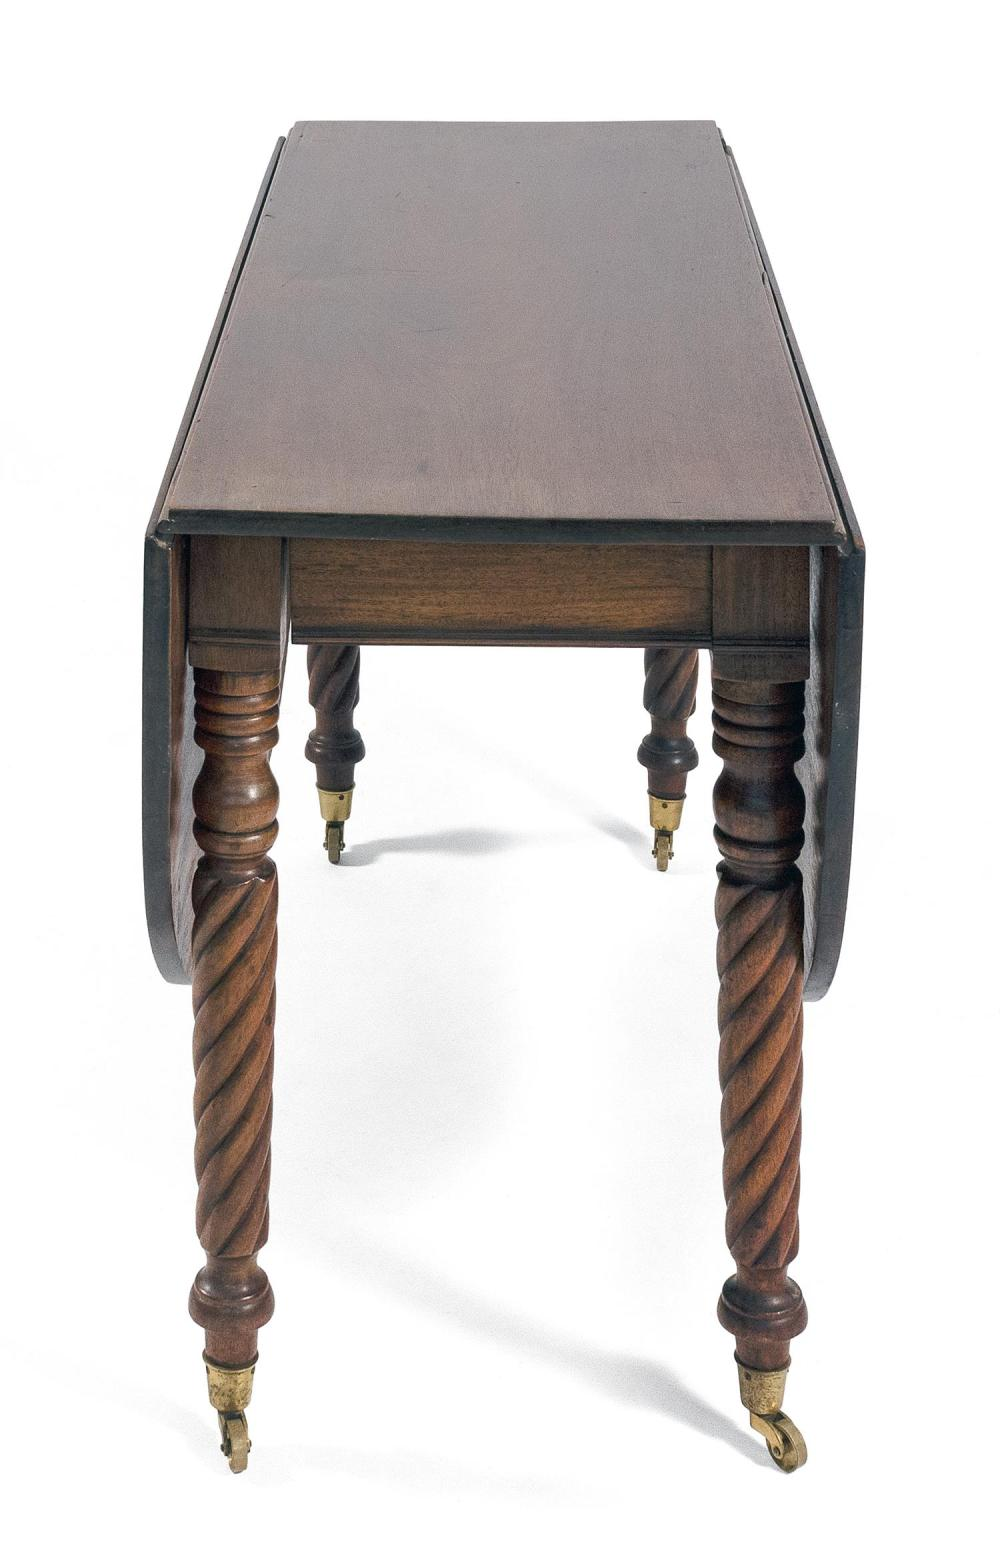 SHERATON DROP-LEAF TABLE In mahogany, with demilune drop leaves and bold rope-turned legs fitted with brass casters. Height 28.75